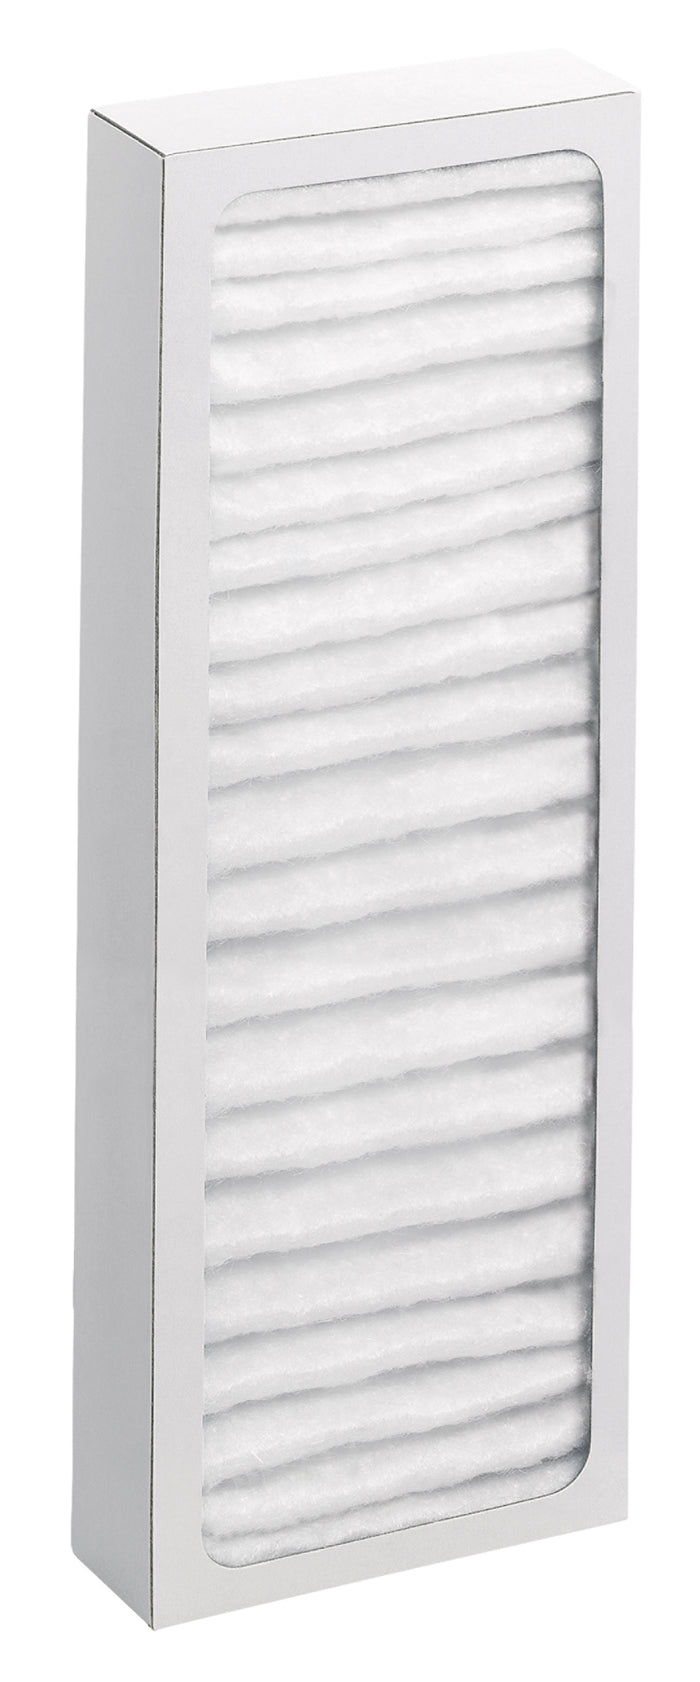 Hunter HEPAtech 30965 Replacement Filter